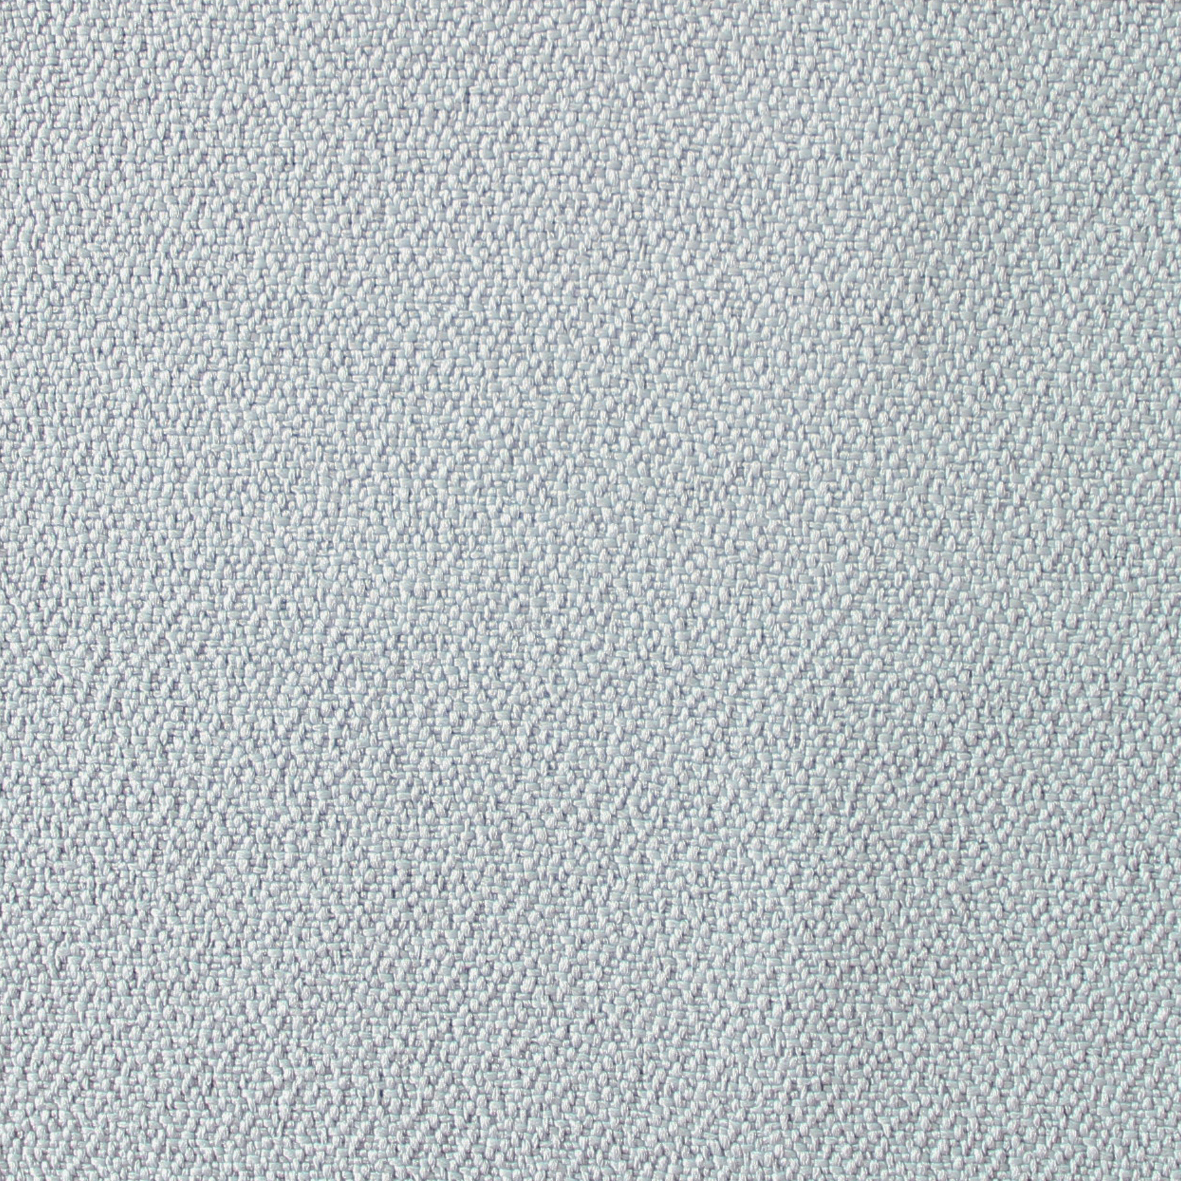 Spring, a panel fabric for contract / workplace